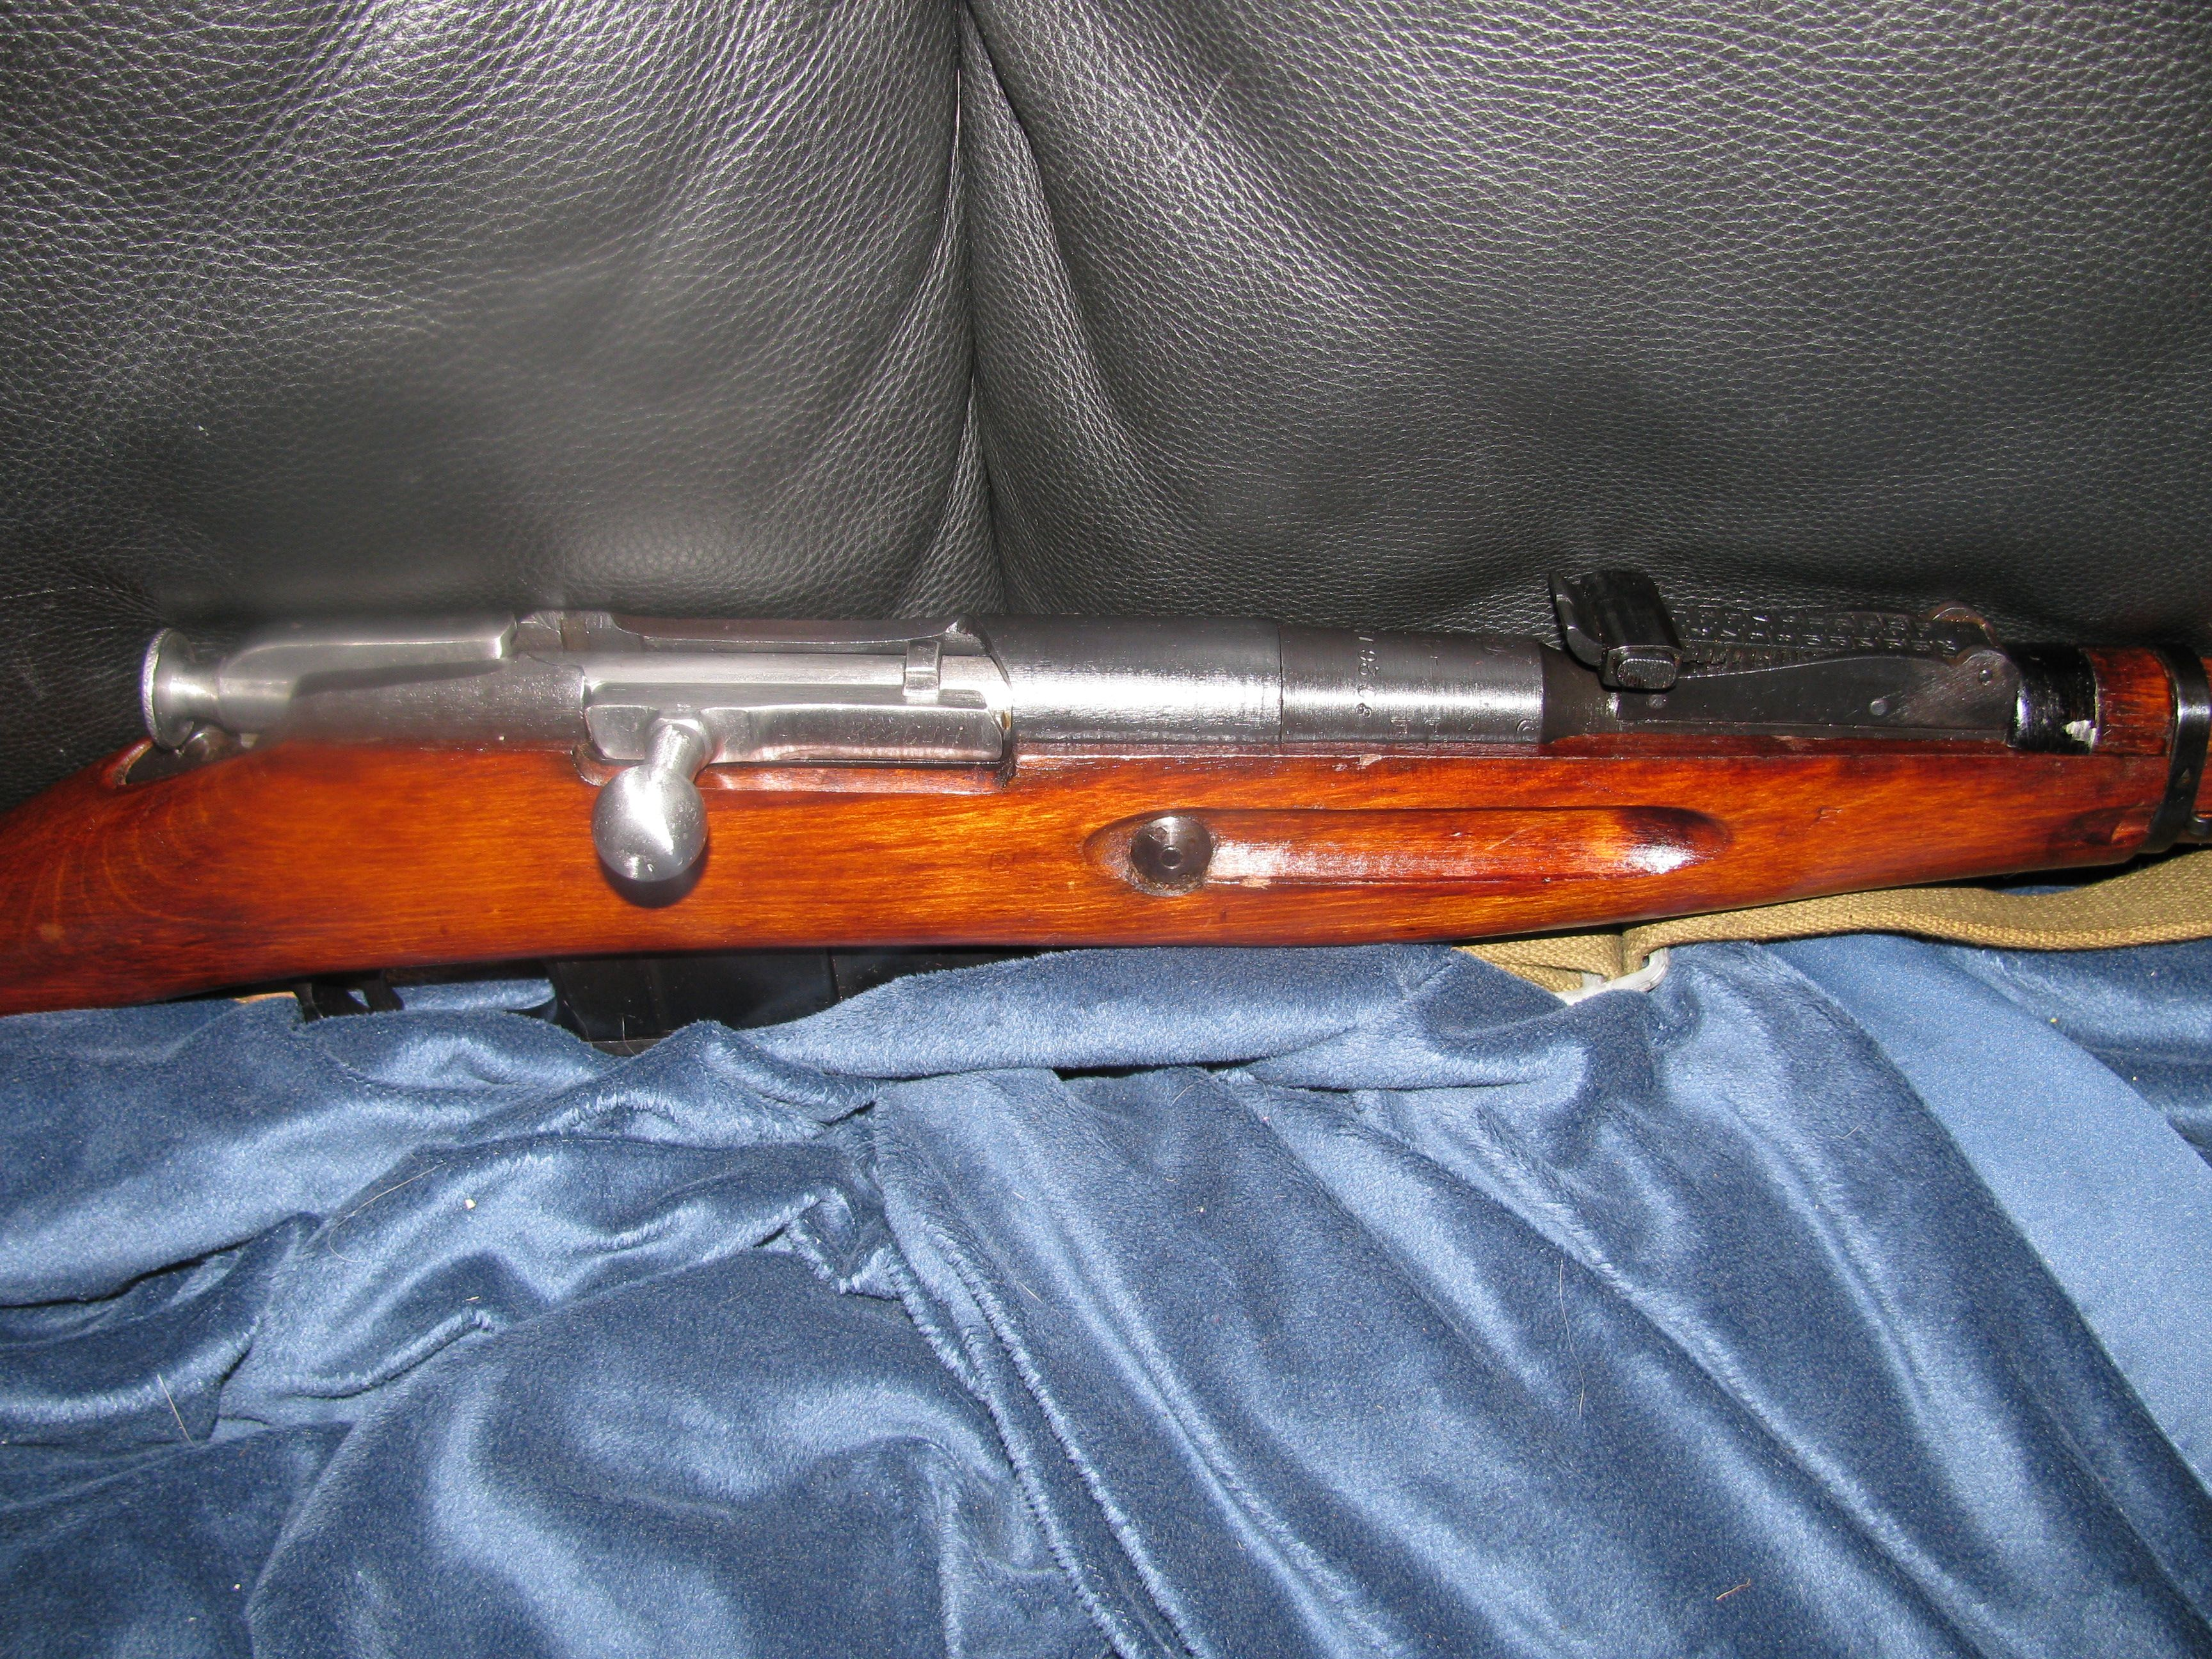 New Mosin Nagant 91/30 - General Rifle Discussion